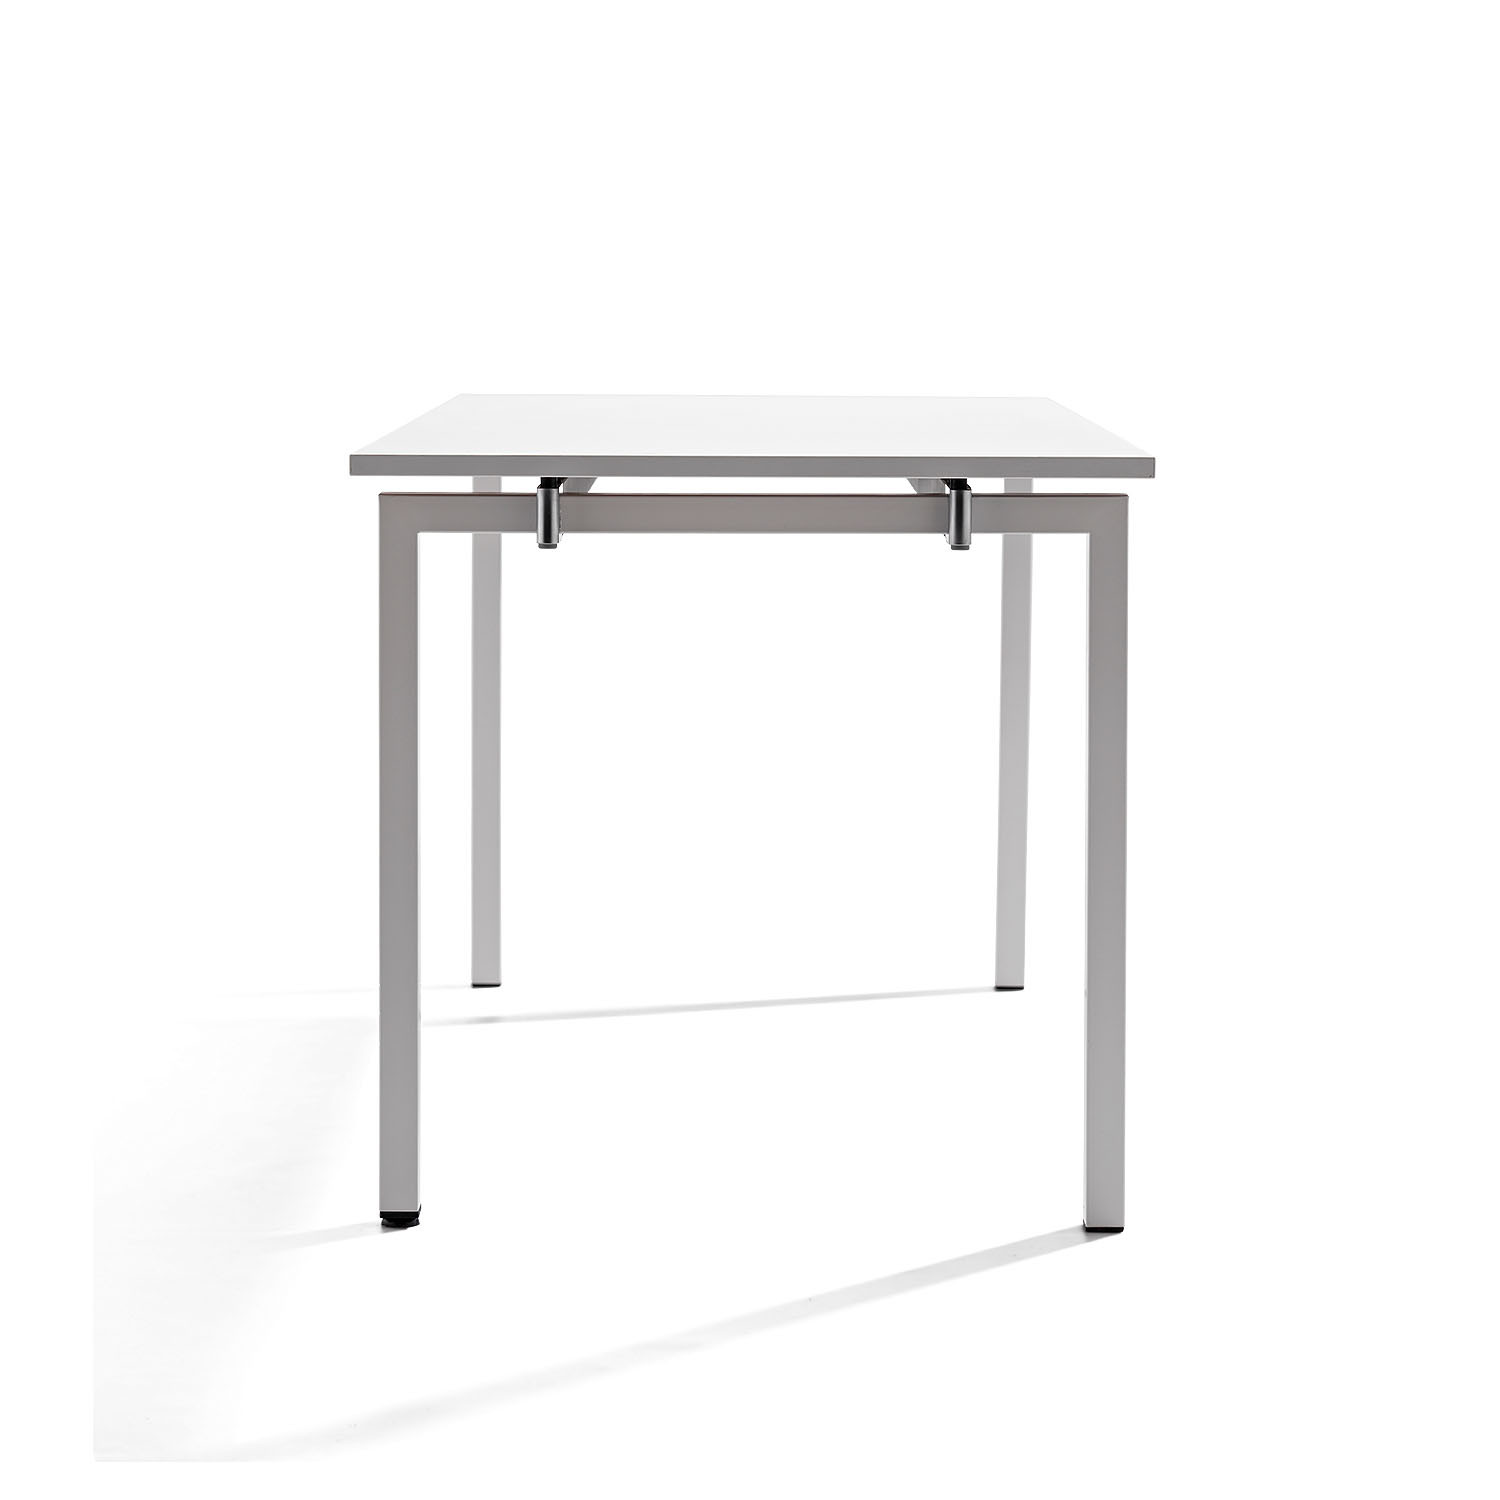 Flex Folding Table Frame View